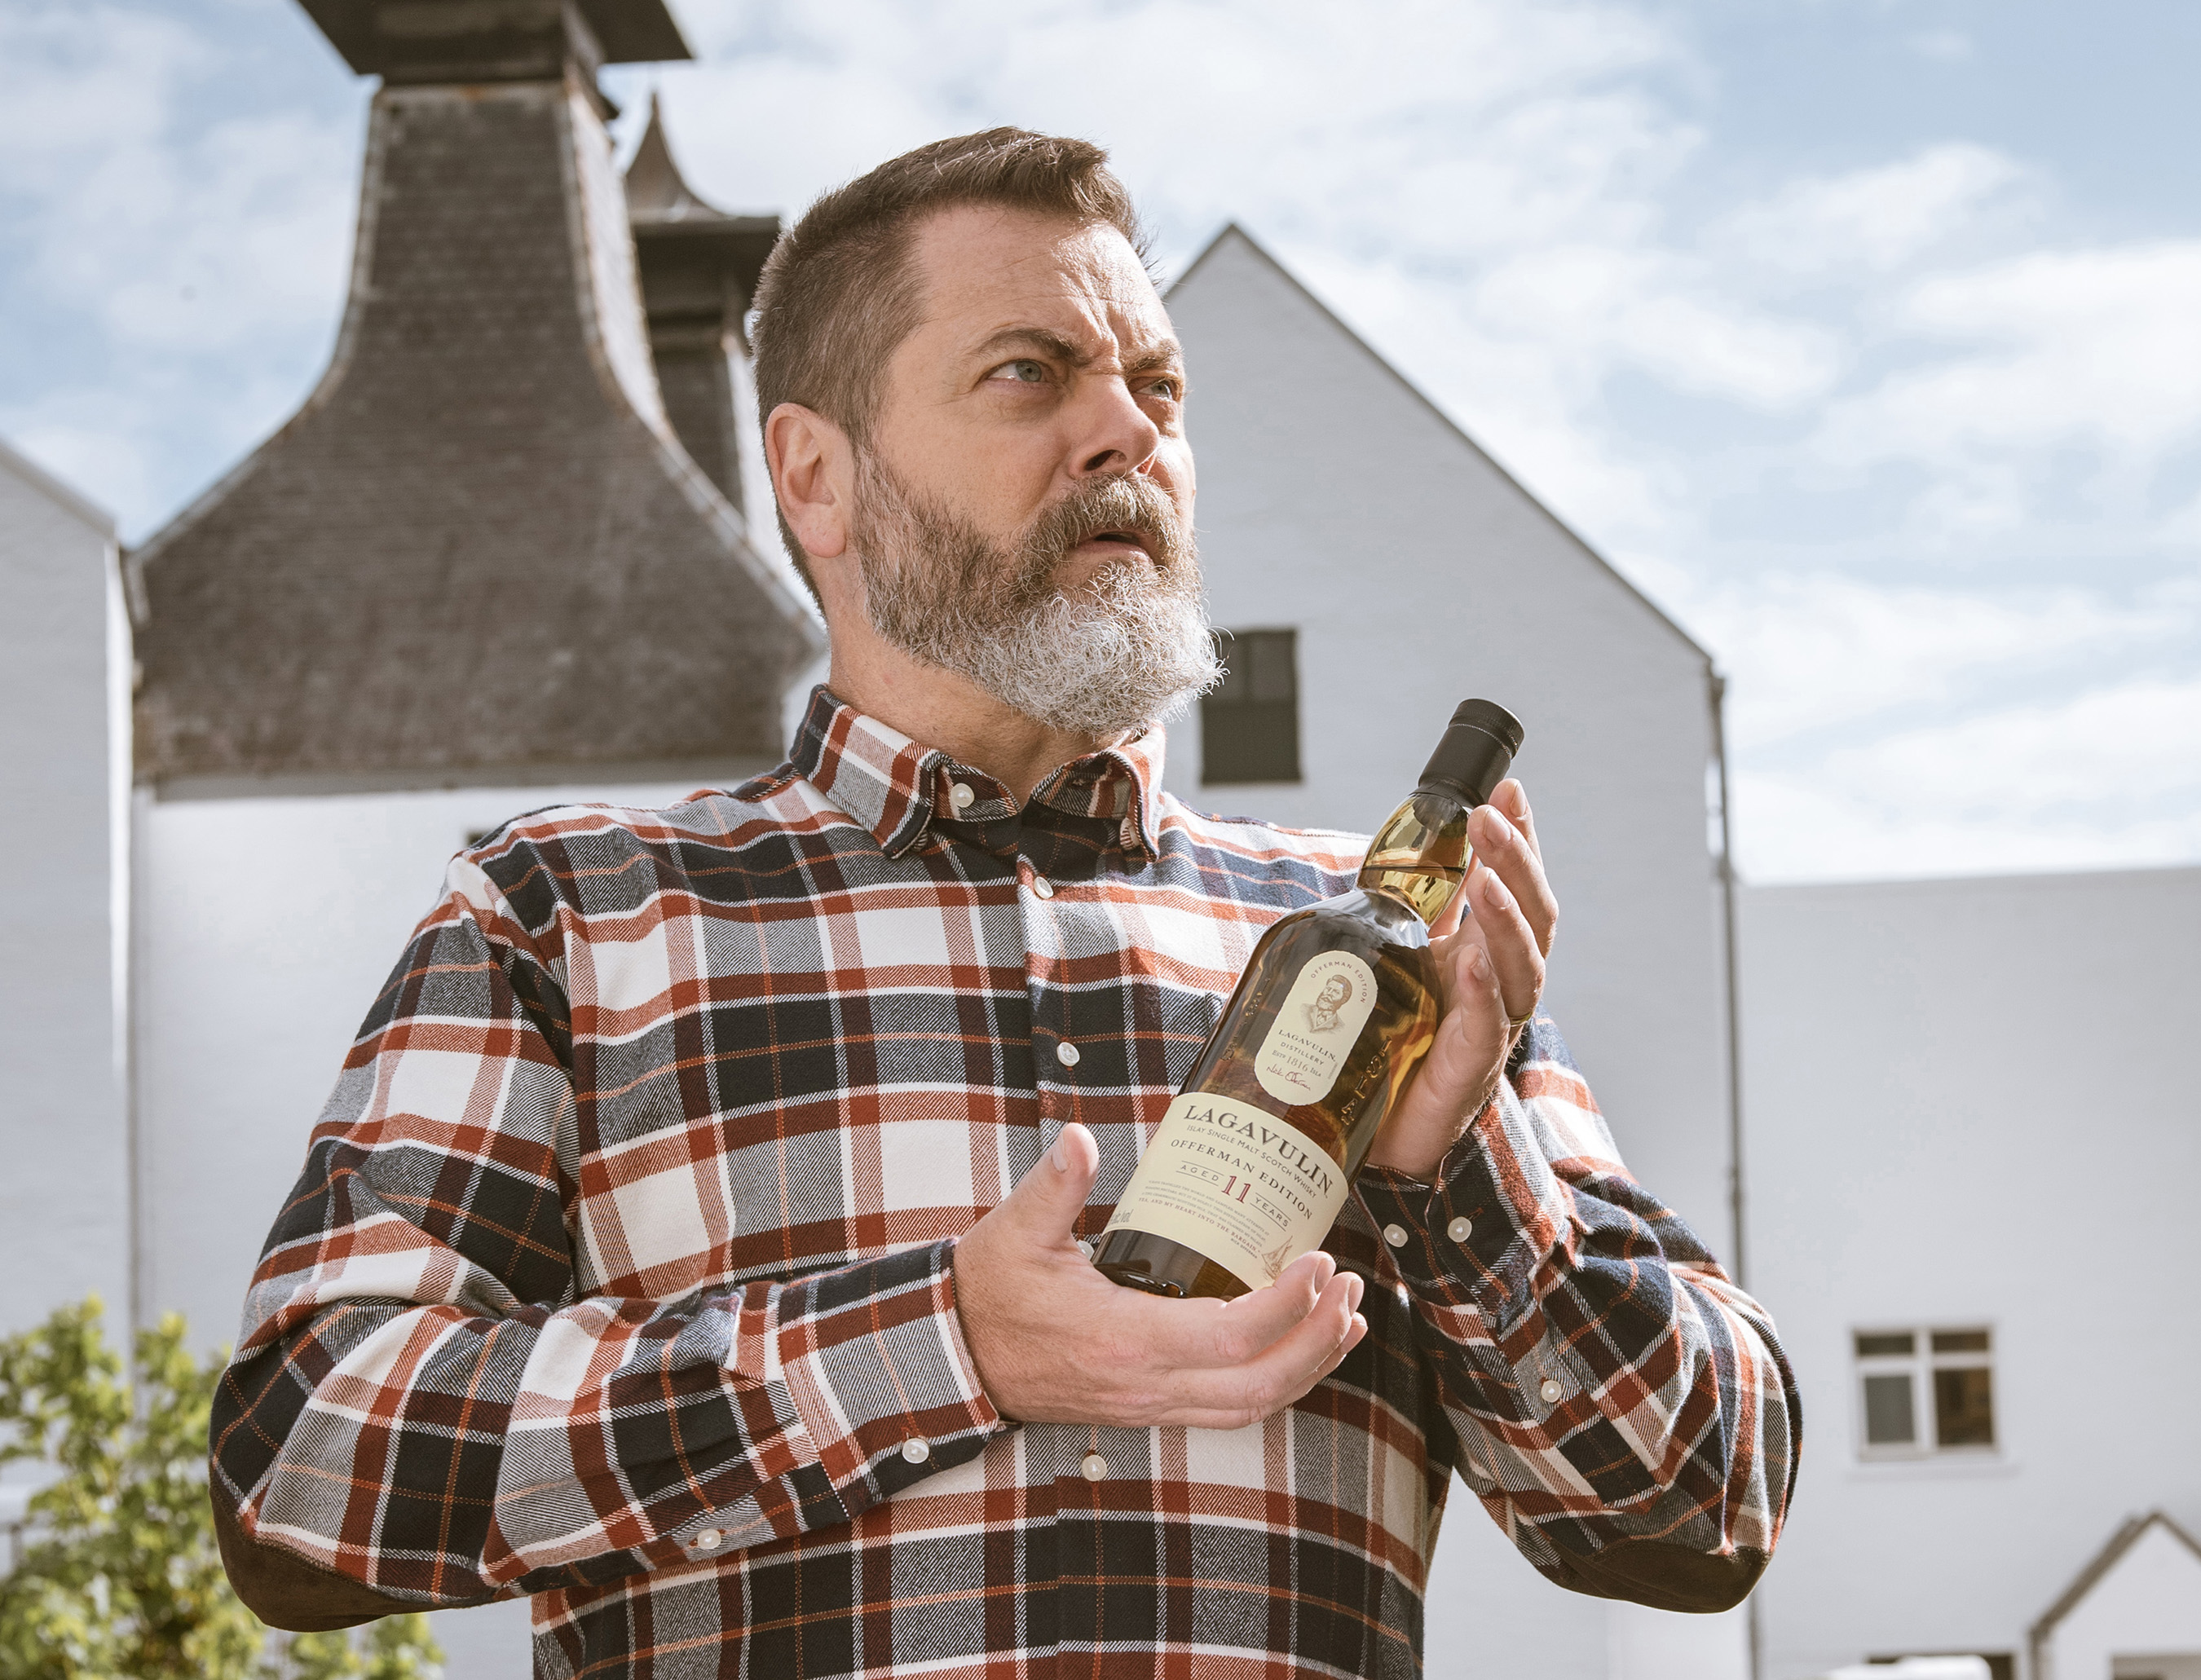 Nick Offerman's ongoing partnership with Lagavulin began in 2014 with the creation of the inaugural My Tales of Whisky content series. Now, Lagavulin and Offerman are proud to share their newest video series celebrating the limited edition bottling of Lagavulin Offerman Edition Aged 11 Years. Photo credit: Ben Shakespeare Photography – Islay.